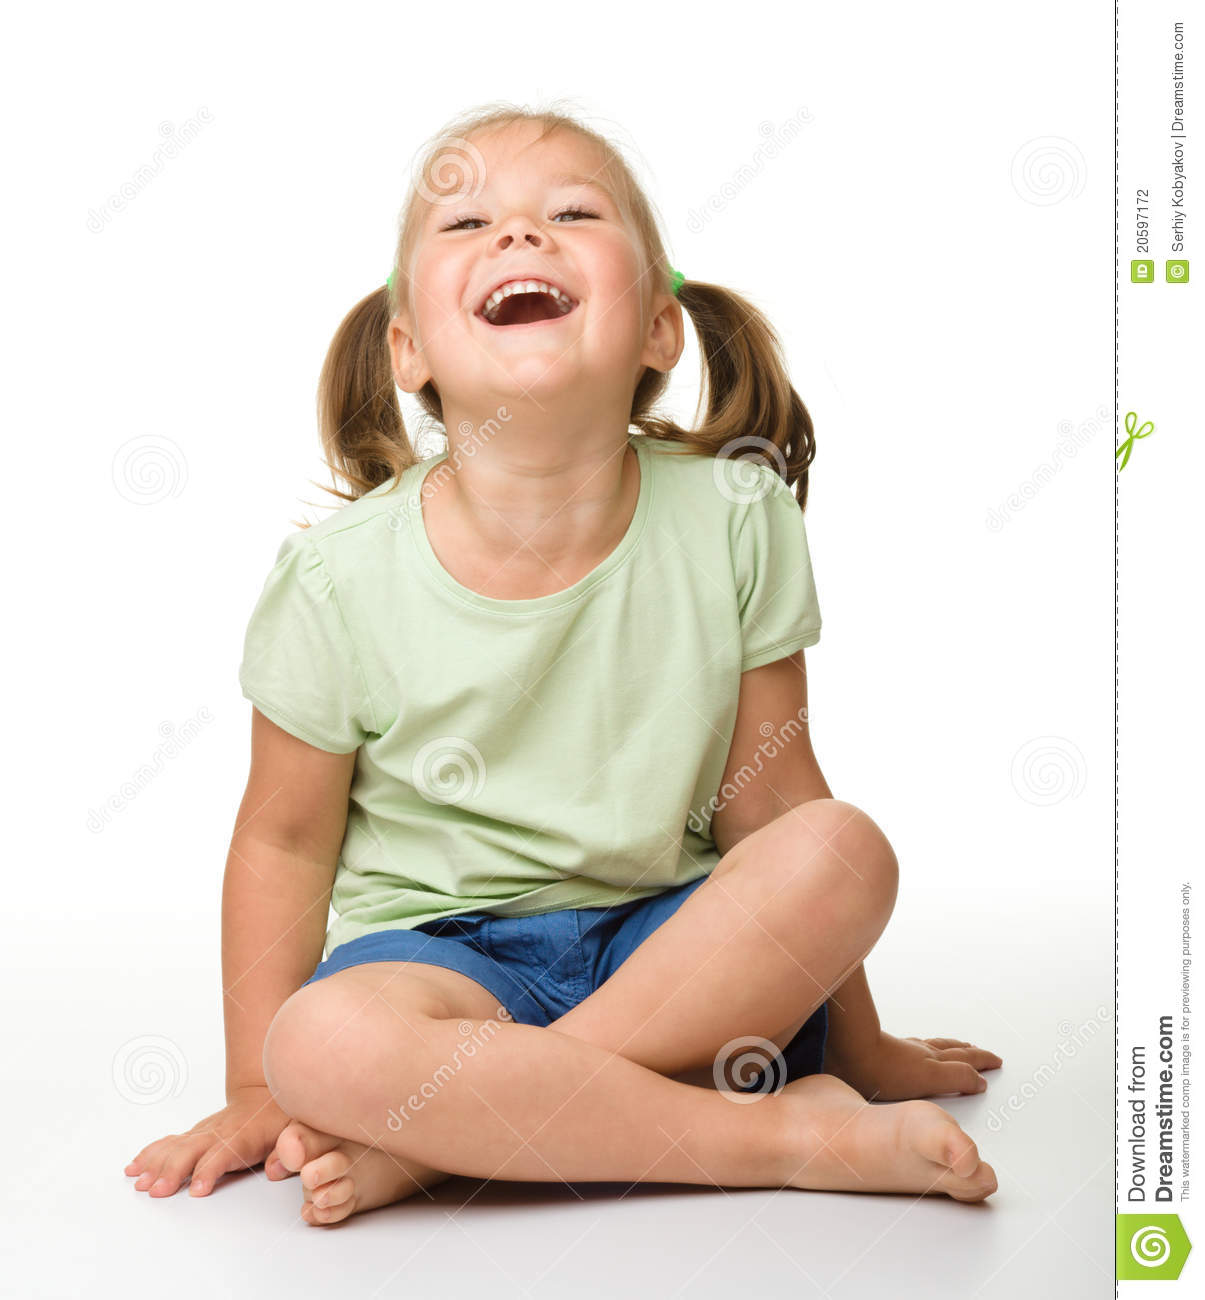 Portrait of a cute little girl laughing